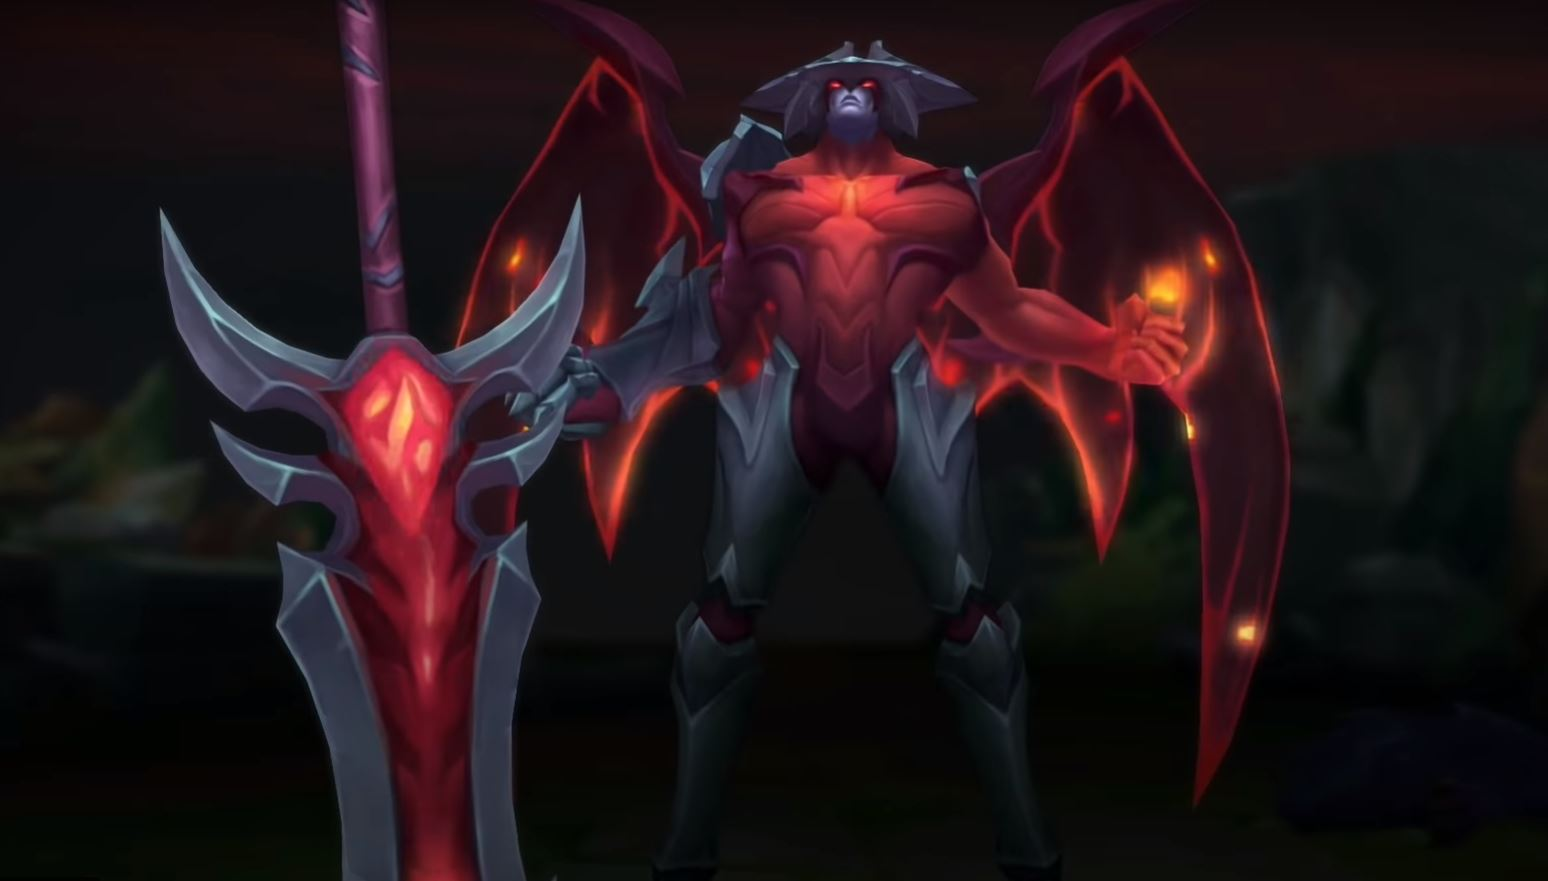 The new Aatrox is bigger, badder, and hits like a freight train